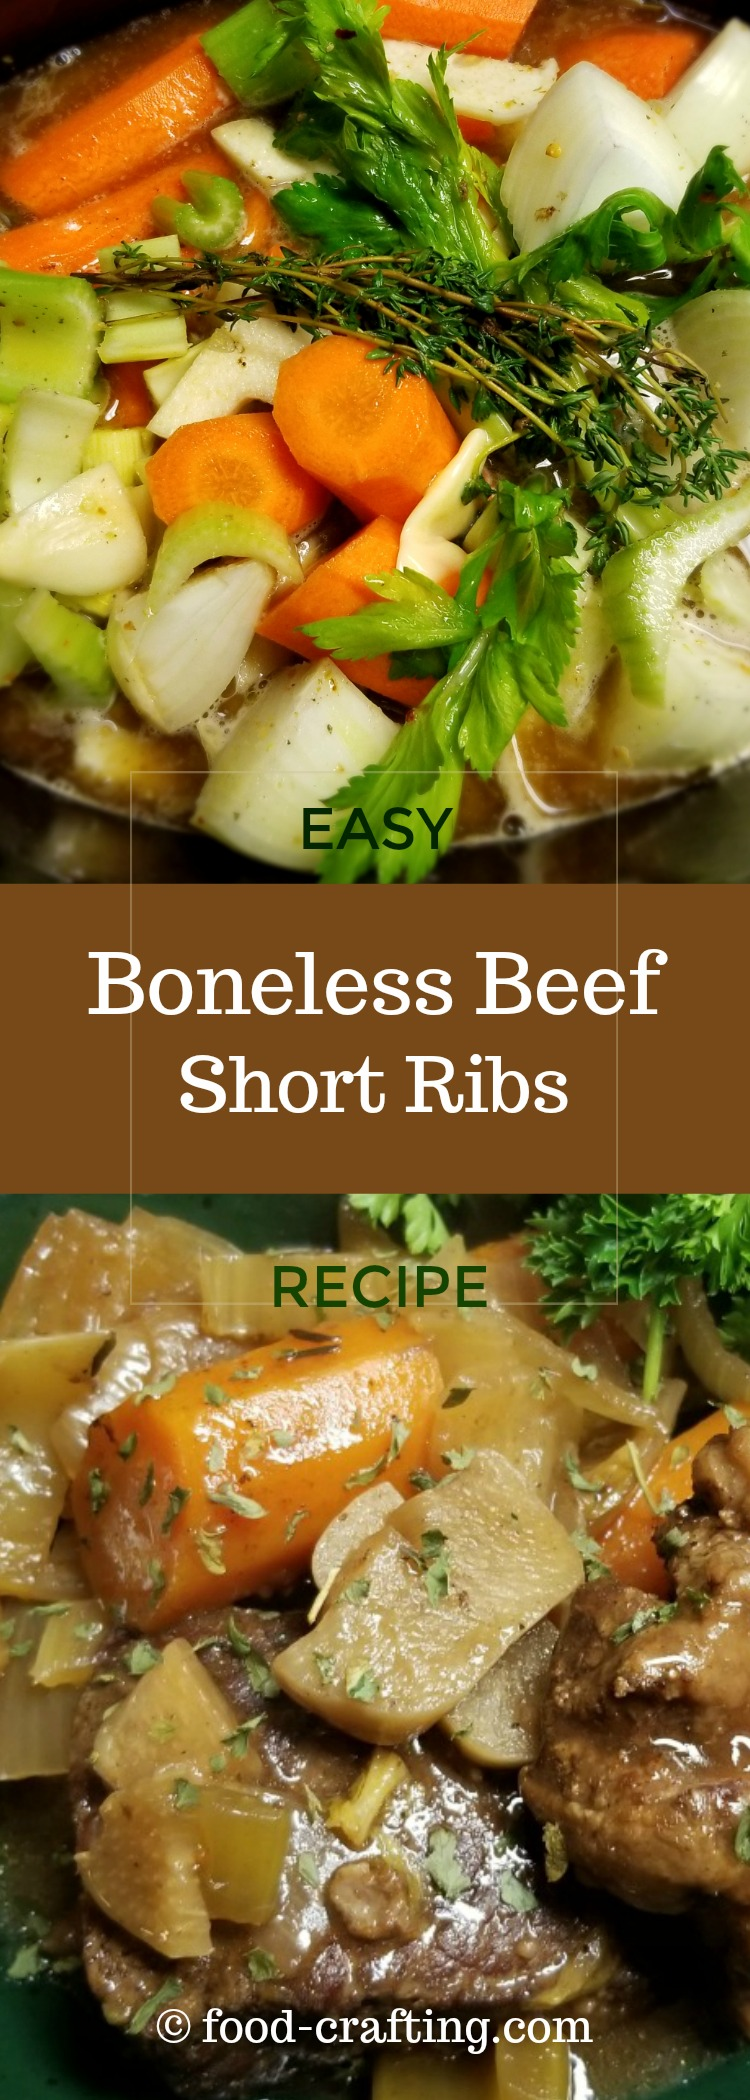 This easy boneless beef short ribs recipe is not exactly lean and mean, with all that butter and all that wine but it sure is easy. Chop the vegetables while the meat is browning, pour some wine into a pan and add everything to your favorite slow cooker.You've got 6 hours to multi-task. Enjoy the day!